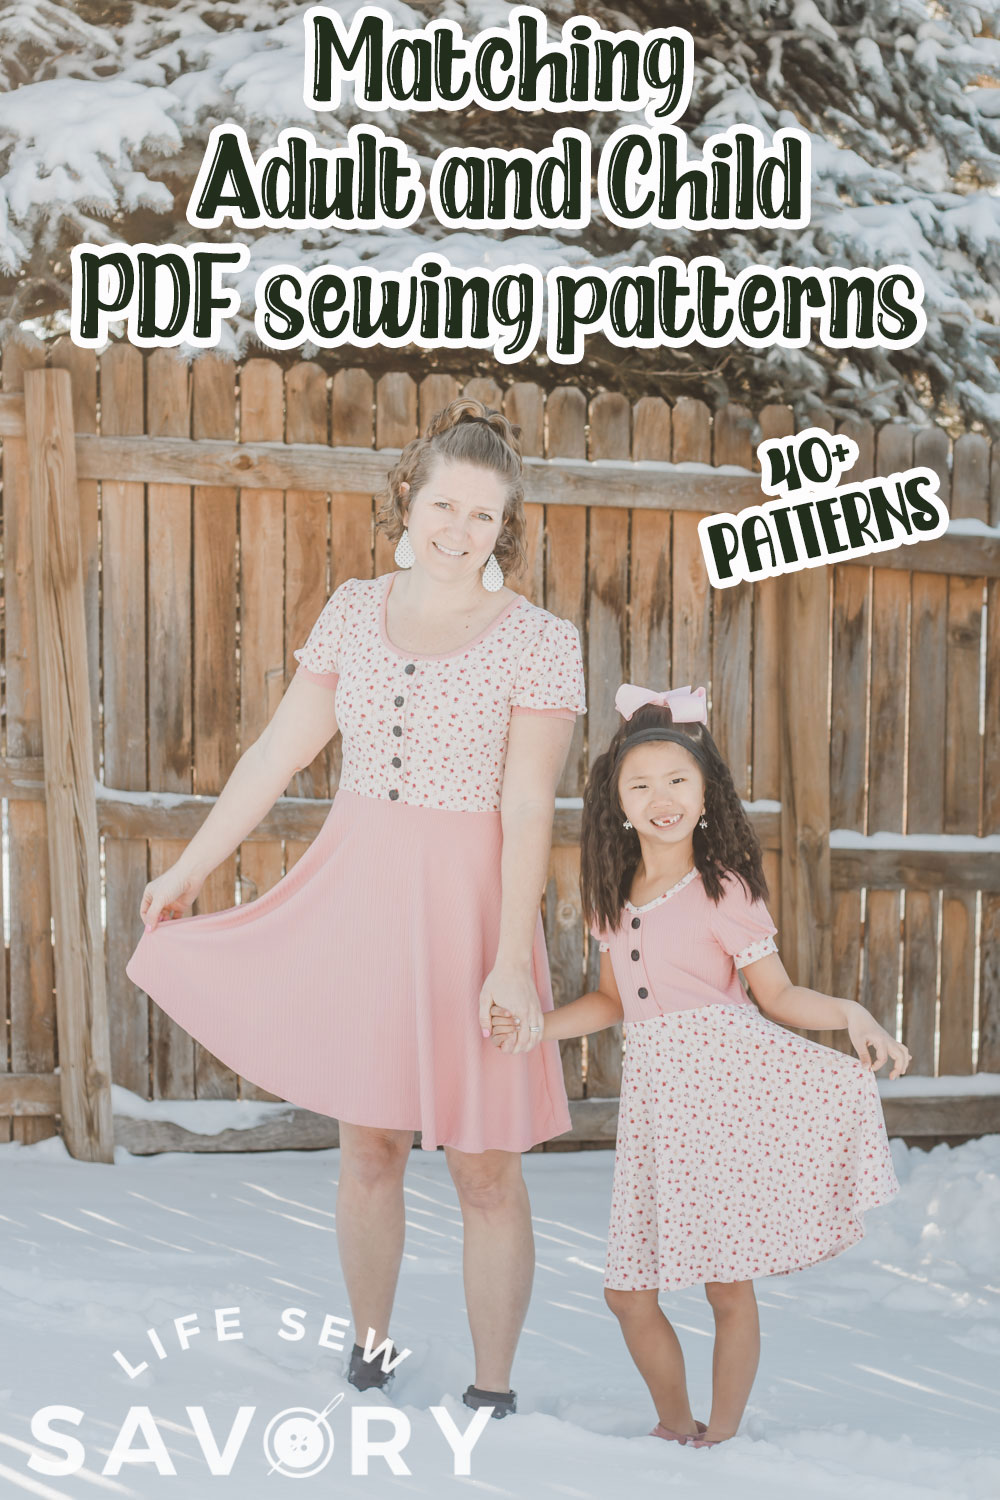 Adult and Child matching sewing patterns